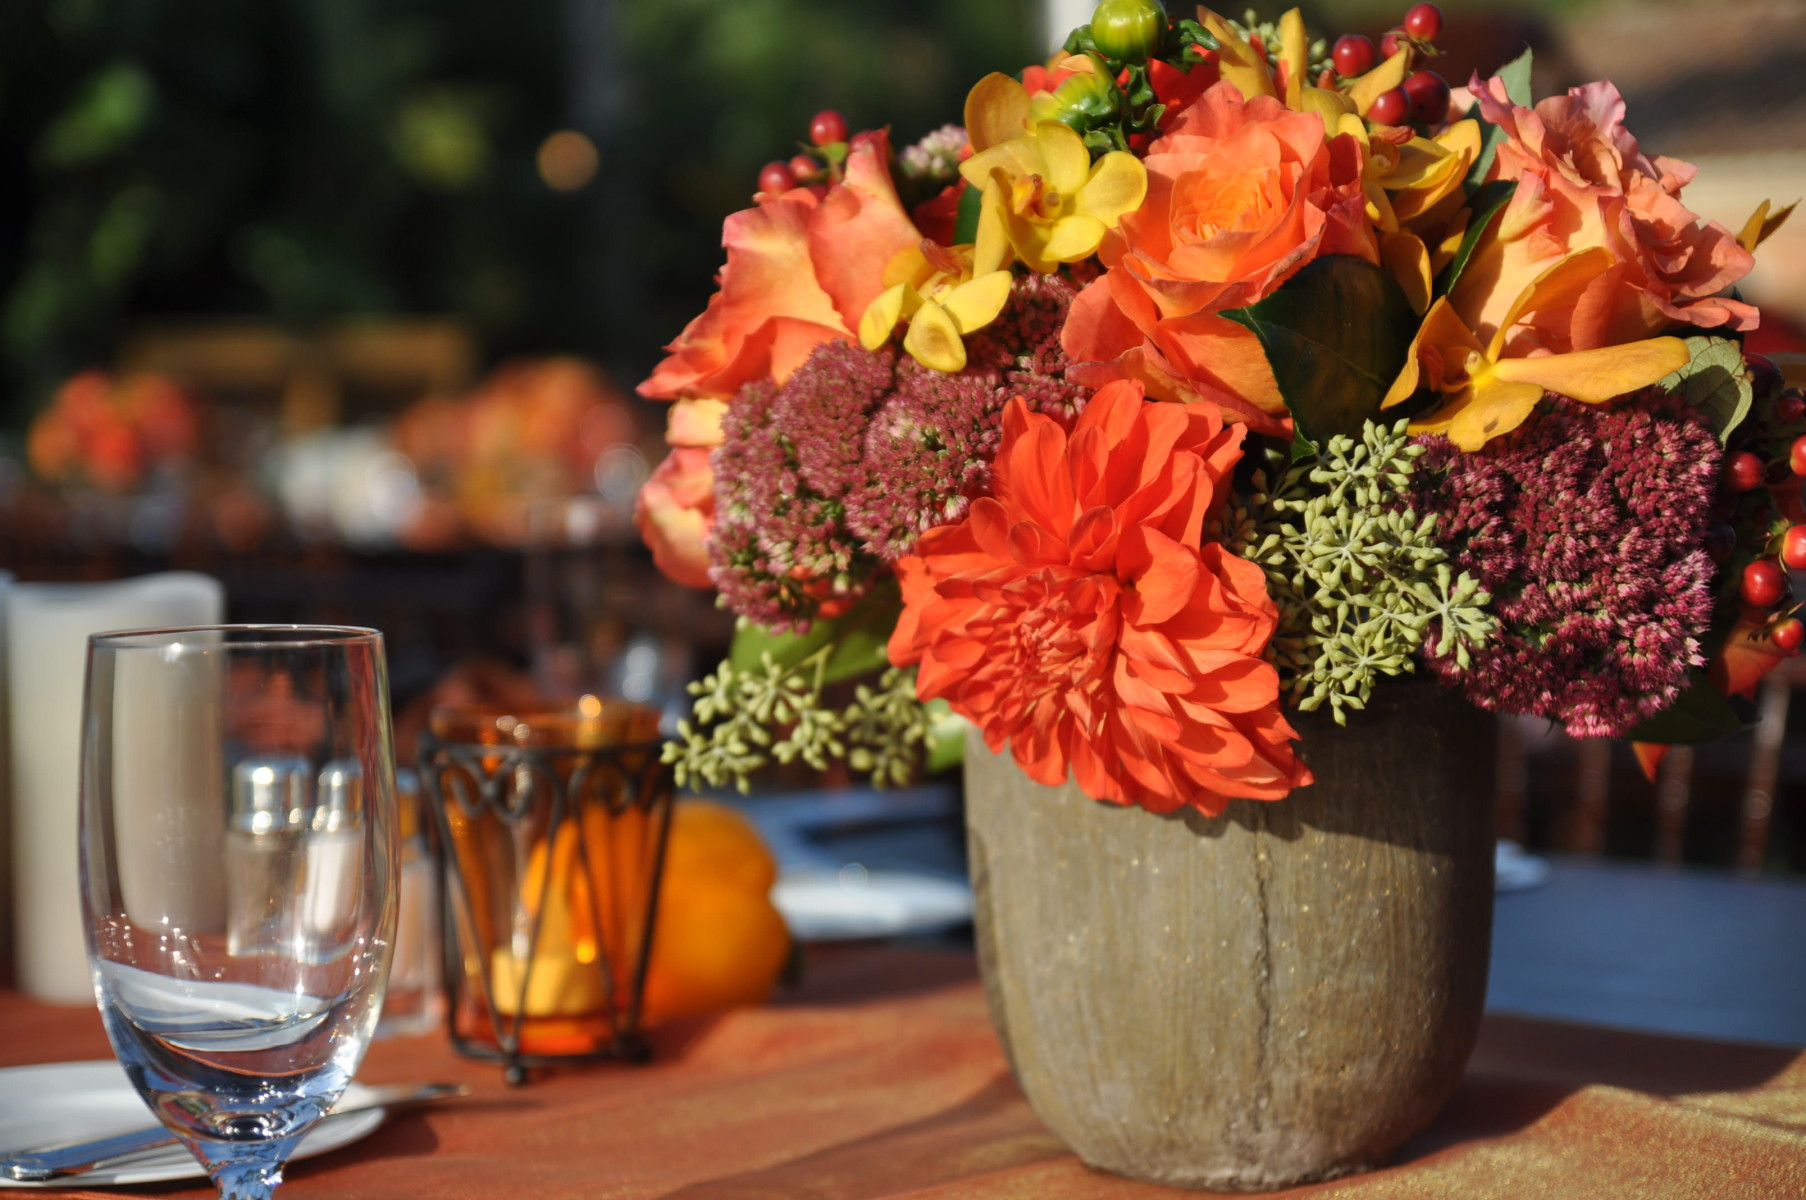 Fall 2013 Retail vase arrangements (11)